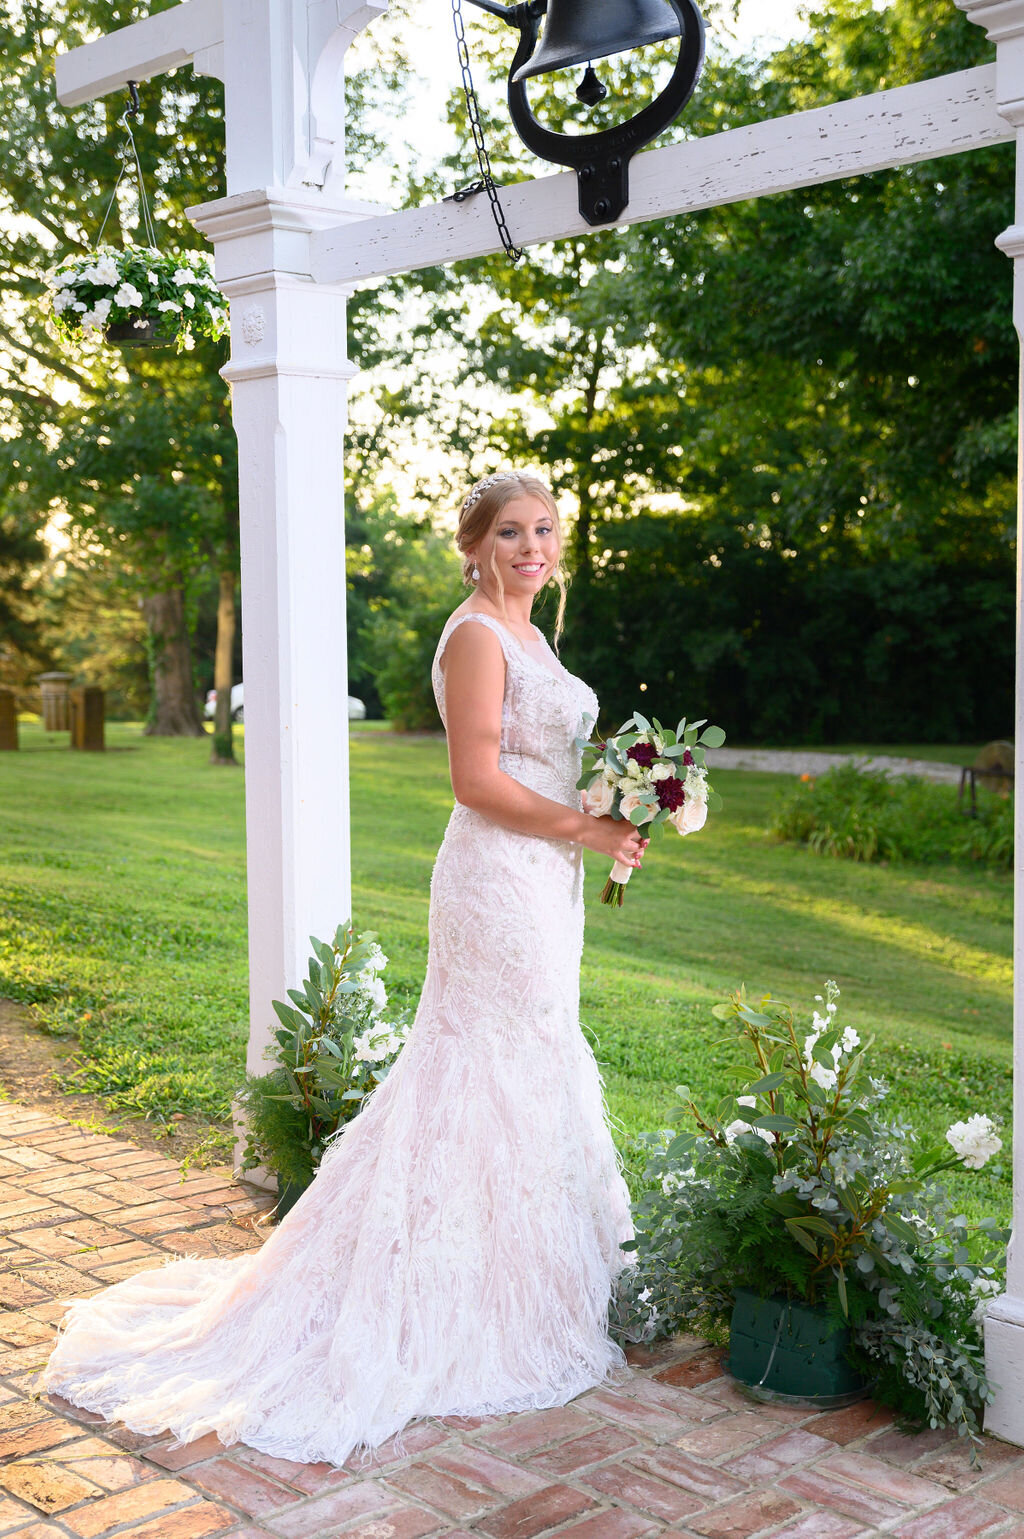 Lynwood Estate - Luxury Richmond Kentucky Wedding Venue - Elegant Estate Wedding 00018